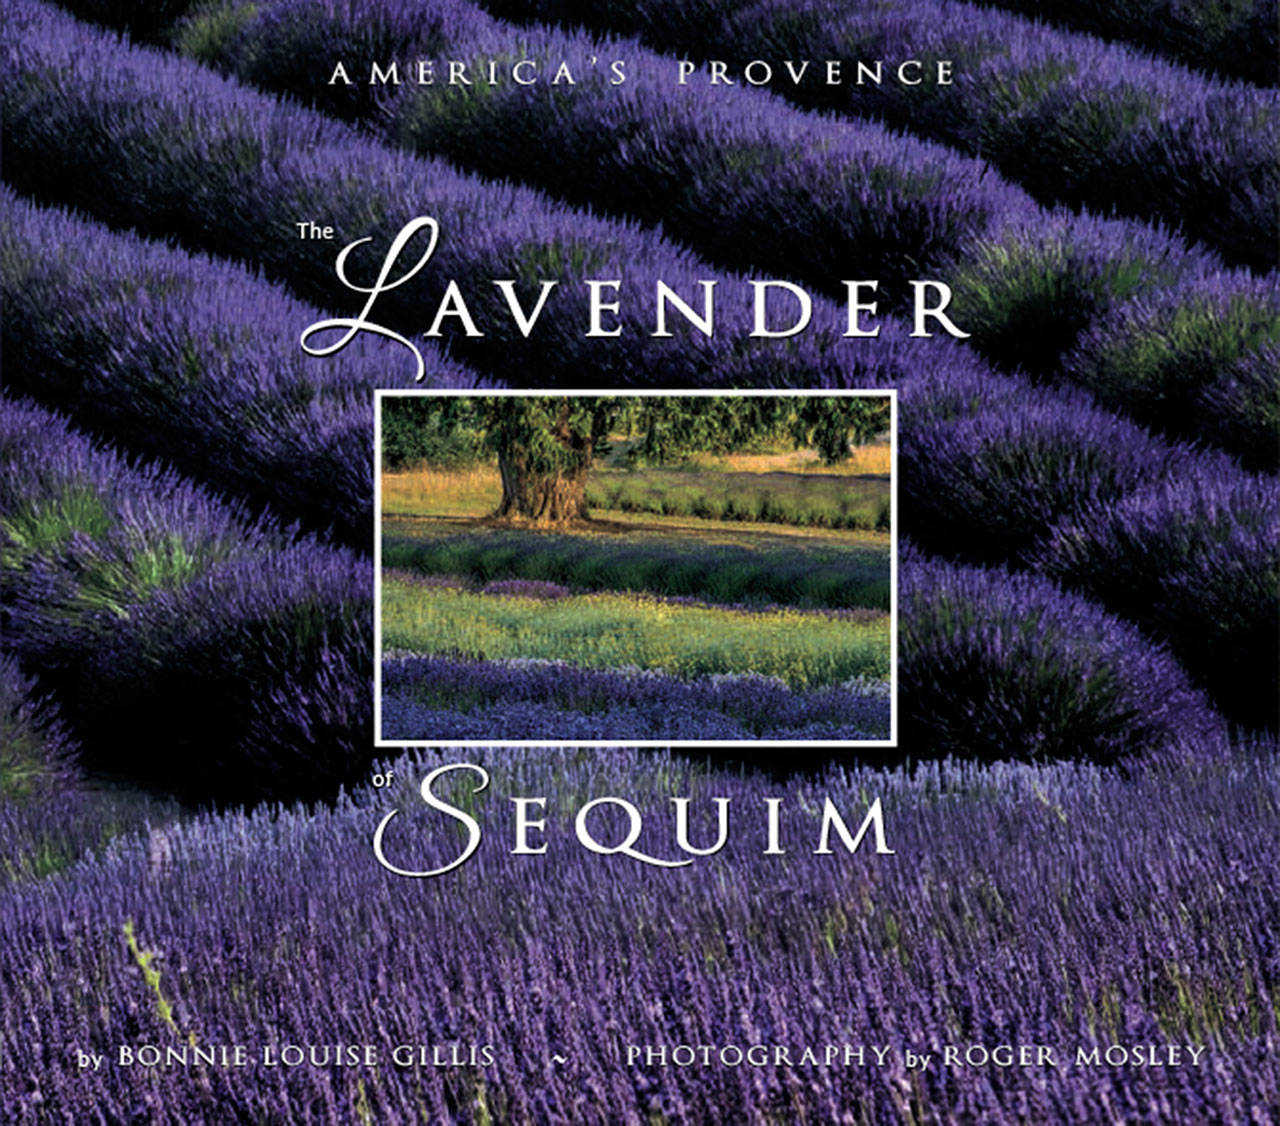 The Lavender of Sequim: America's Provence